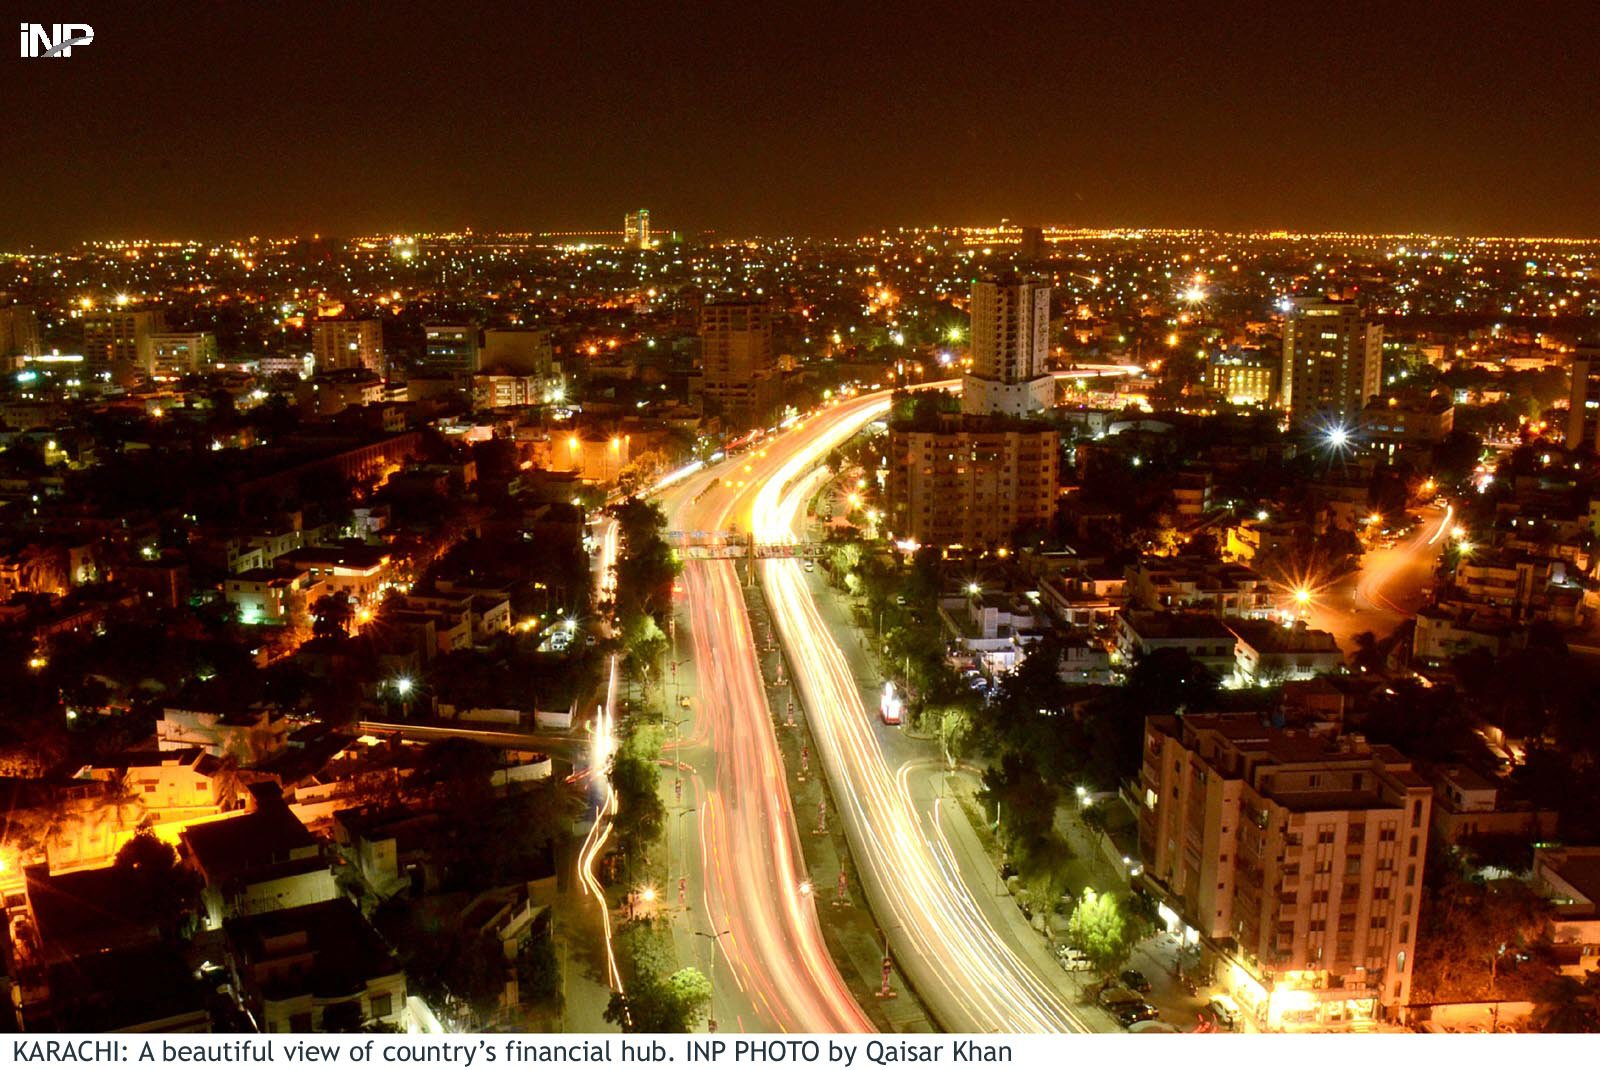 khi_city_view_inp-2-4-2-2-2-2-2-2-2-2-2-2-2-2-2-2